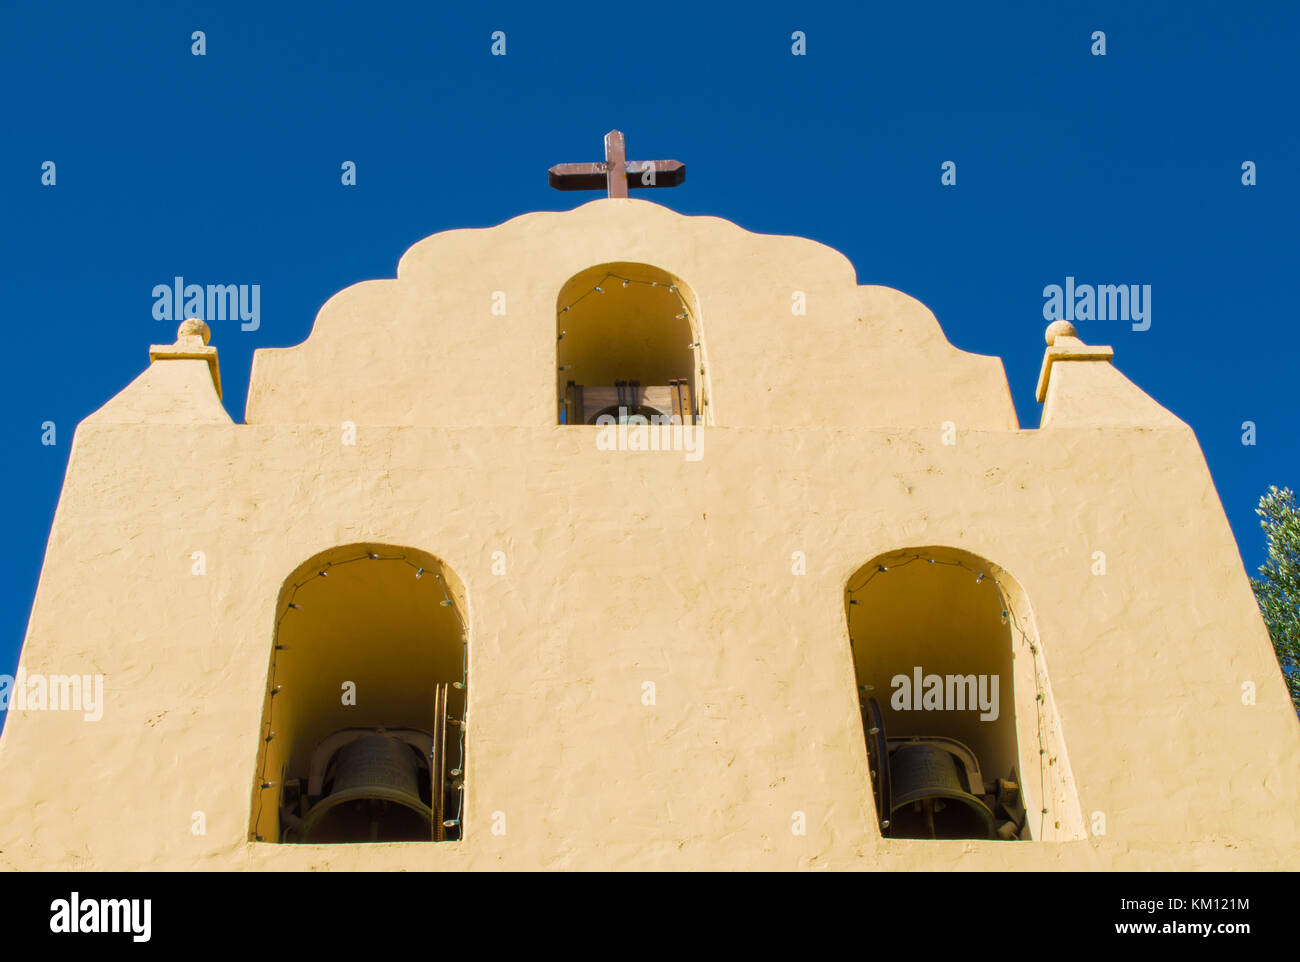 adobe mission bell tower with cross at top viewed from below - Stock Image